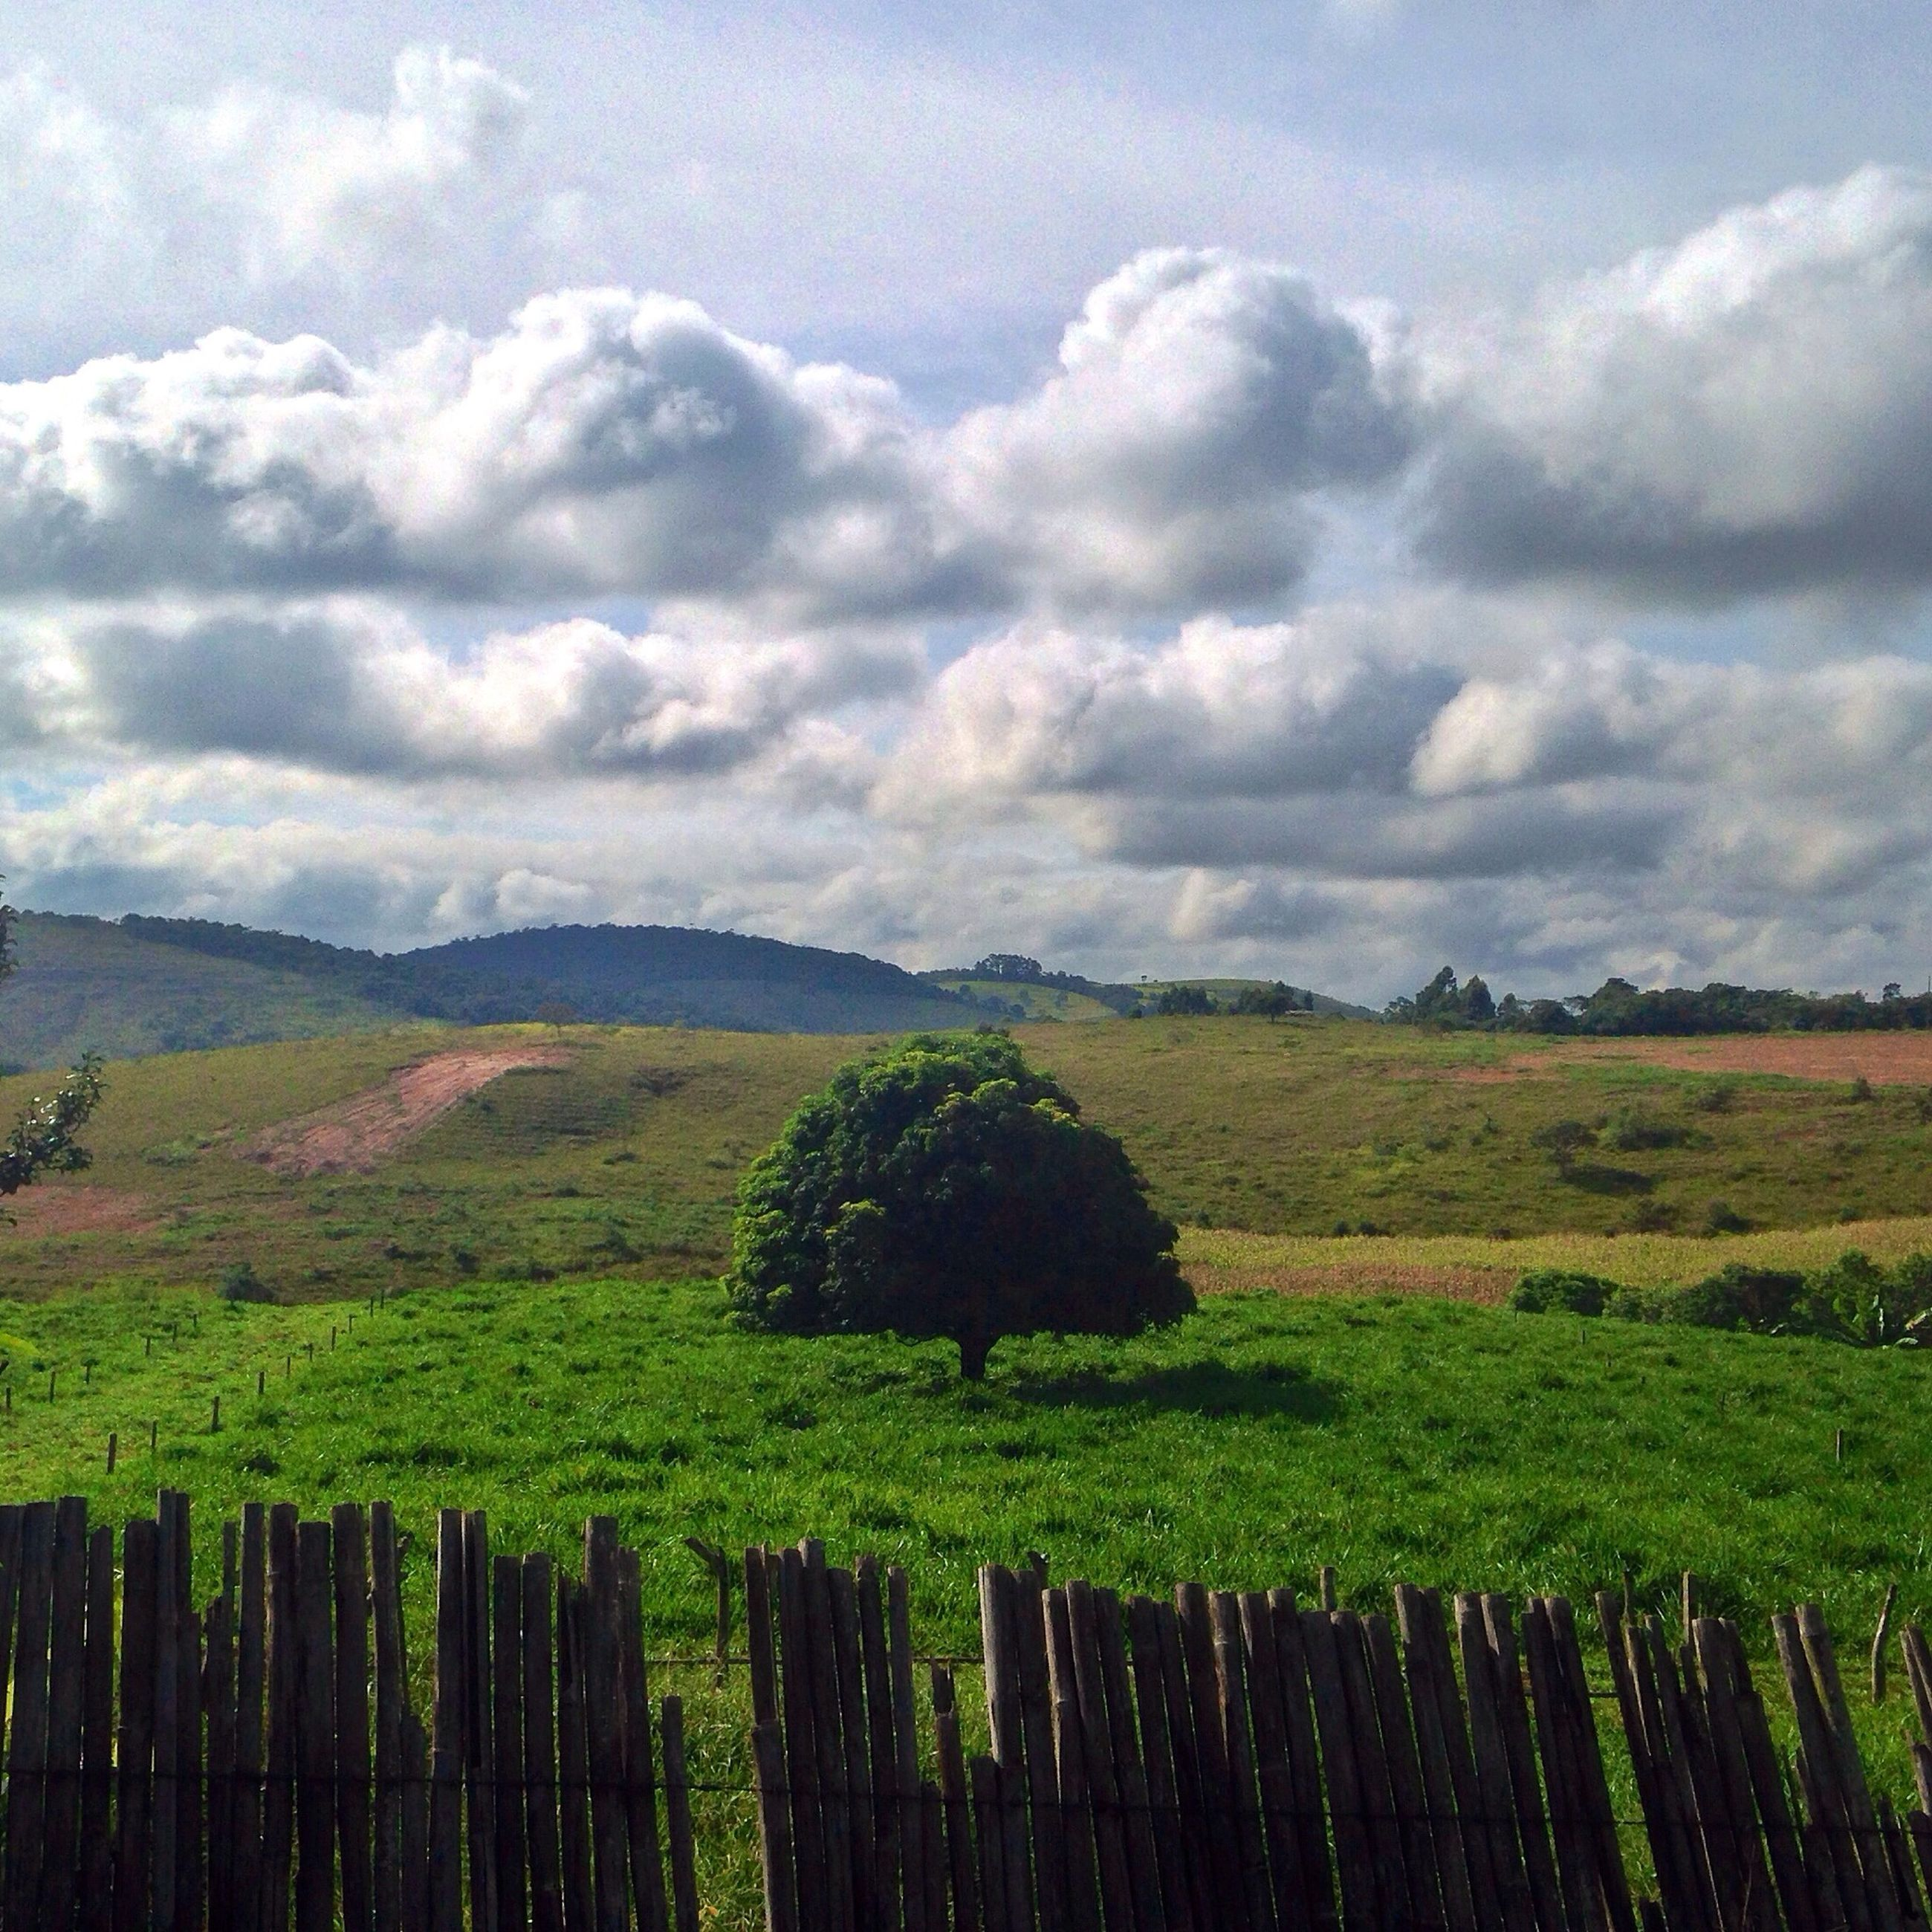 sky, tranquil scene, landscape, tranquility, field, cloud - sky, scenics, beauty in nature, rural scene, nature, tree, growth, cloudy, grass, cloud, agriculture, fence, mountain, green color, farm